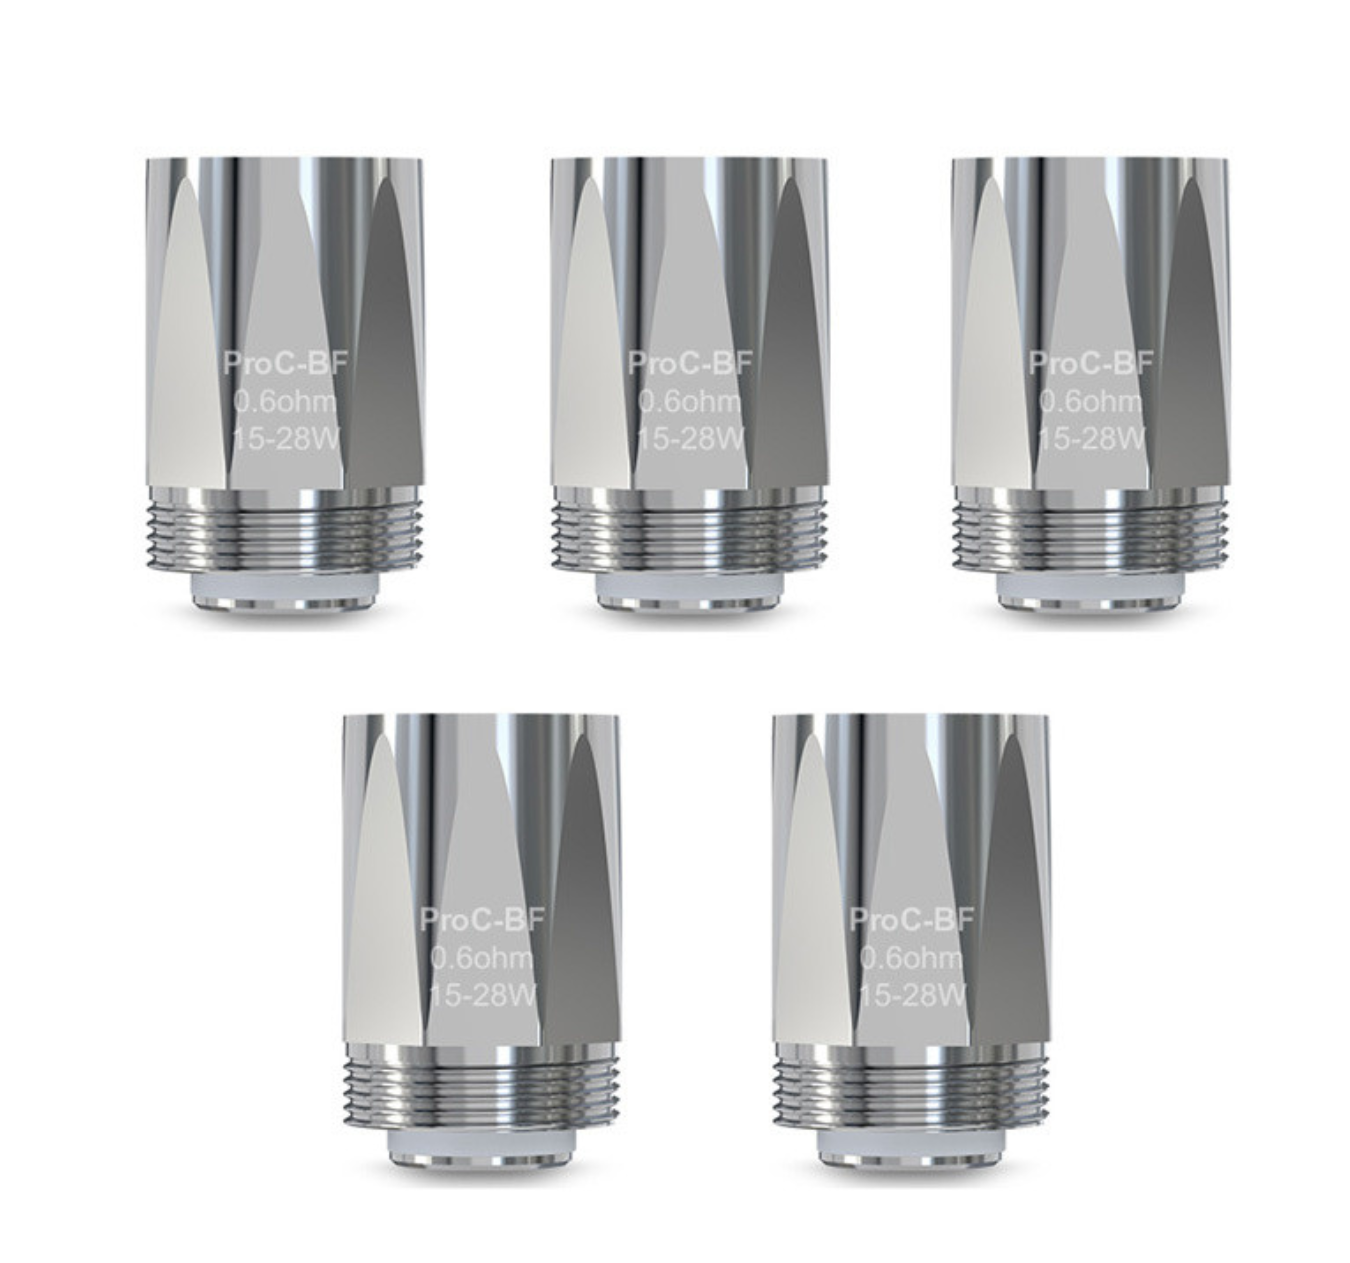 Joyetech ProC-BF atomizer 0,6ohm 5ks